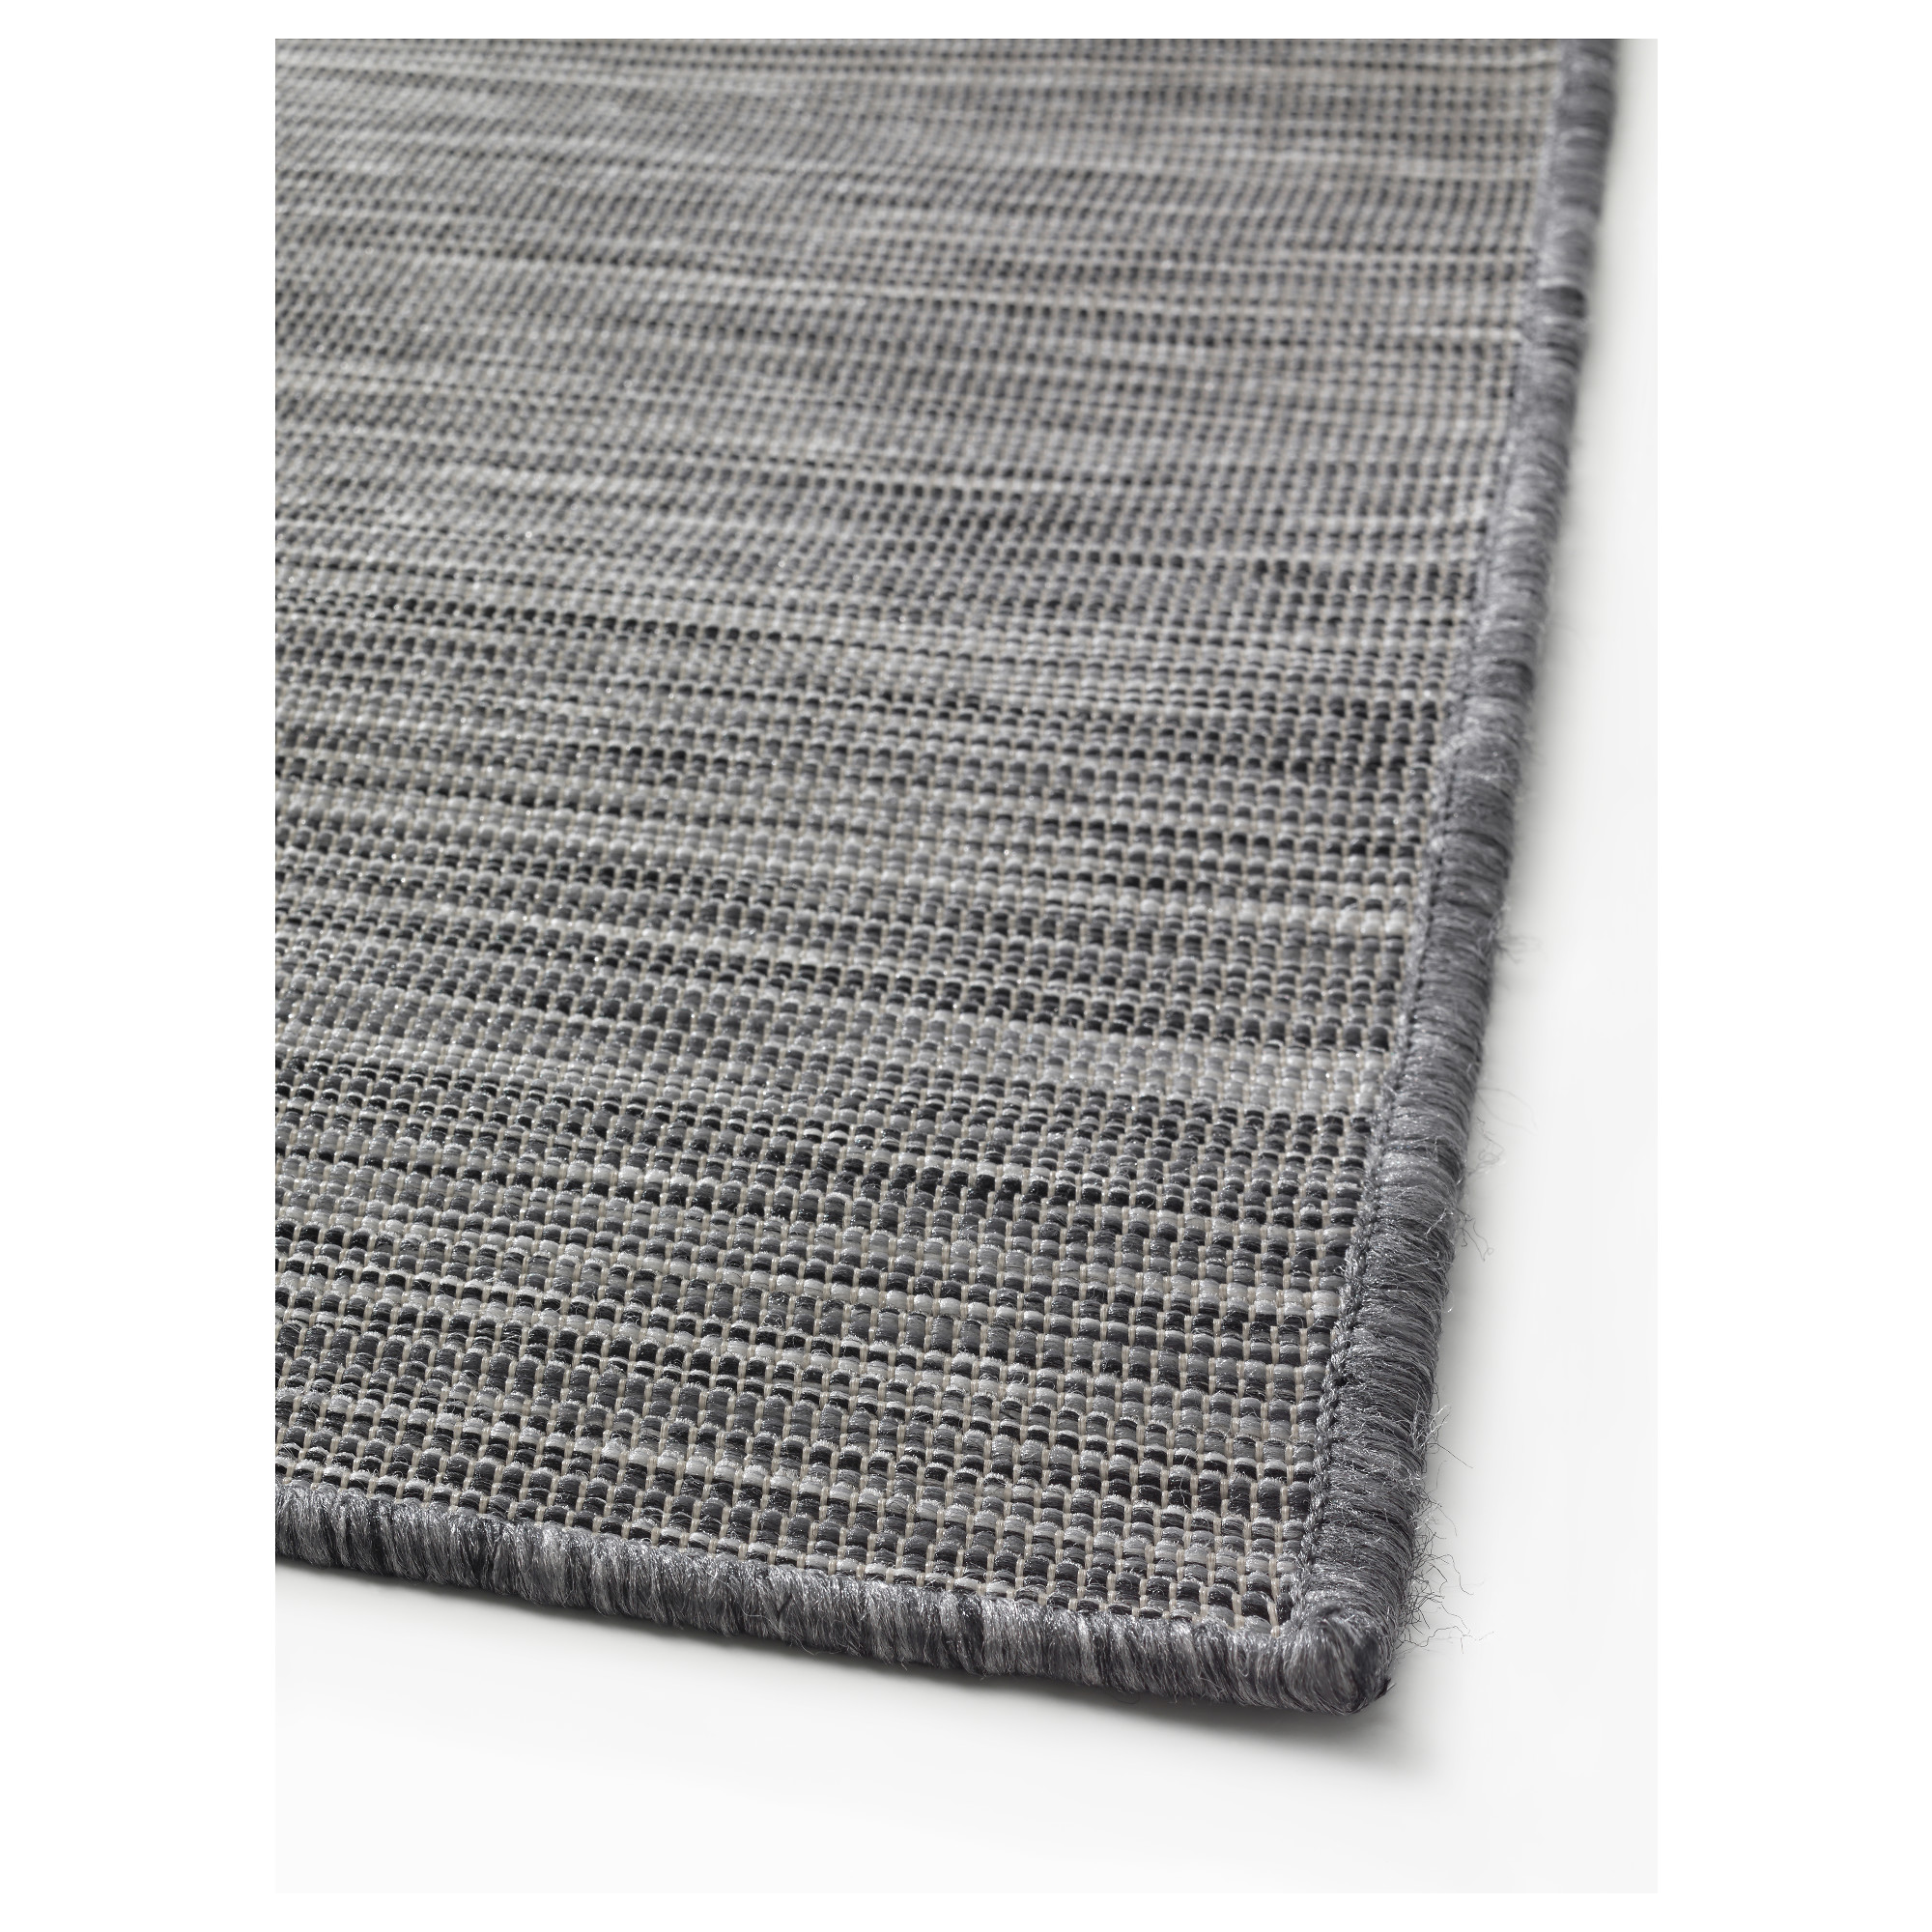 Hodde Rug Flatwoven In Outdoor Grey Black Ikea Hong Kong